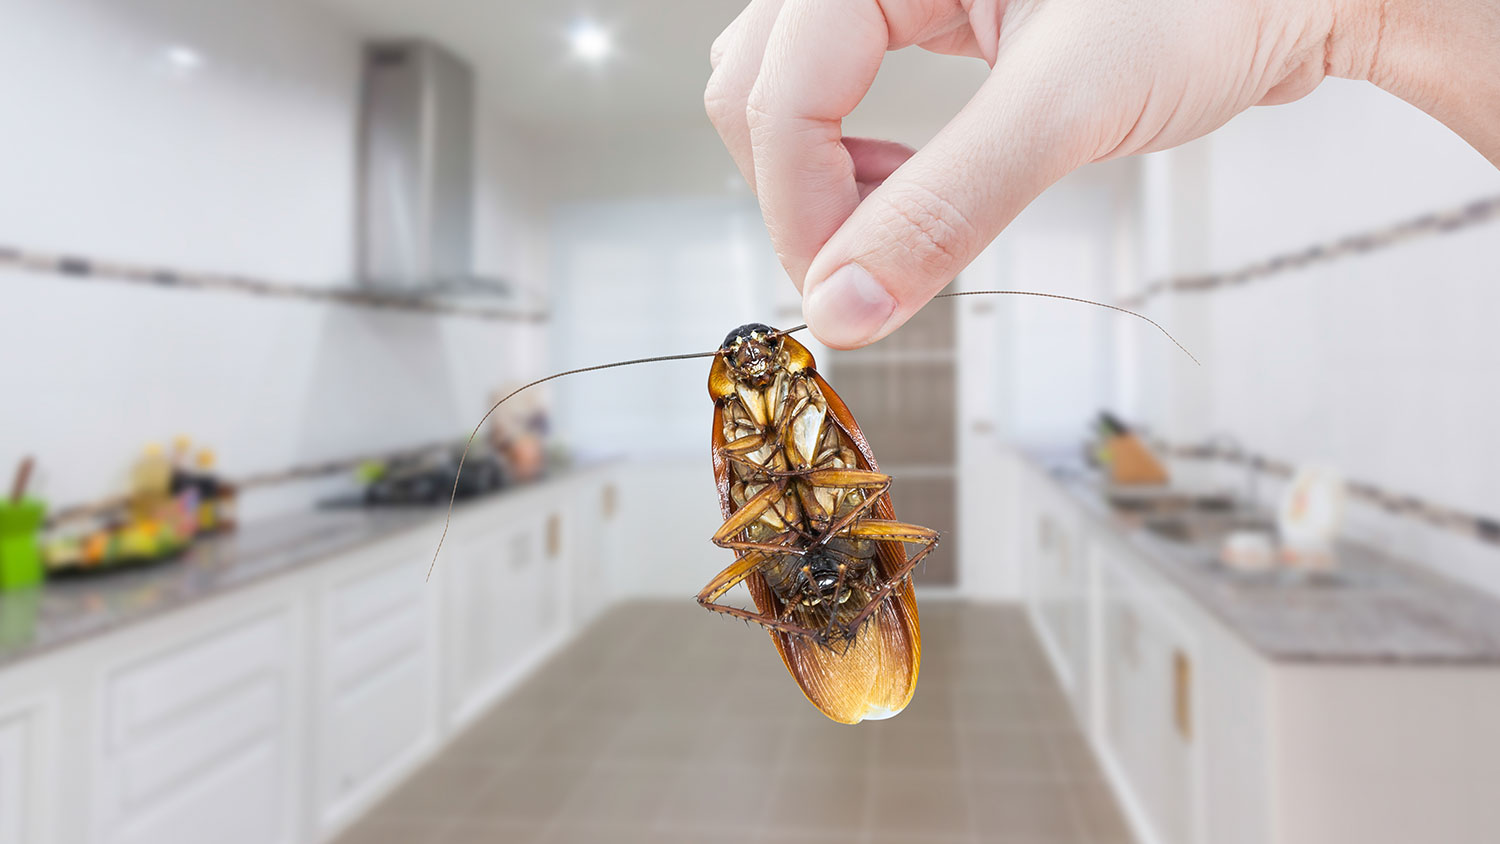 4 ECO-FRIENDLY WAYS TO RID YOUR HOME OF PESTS